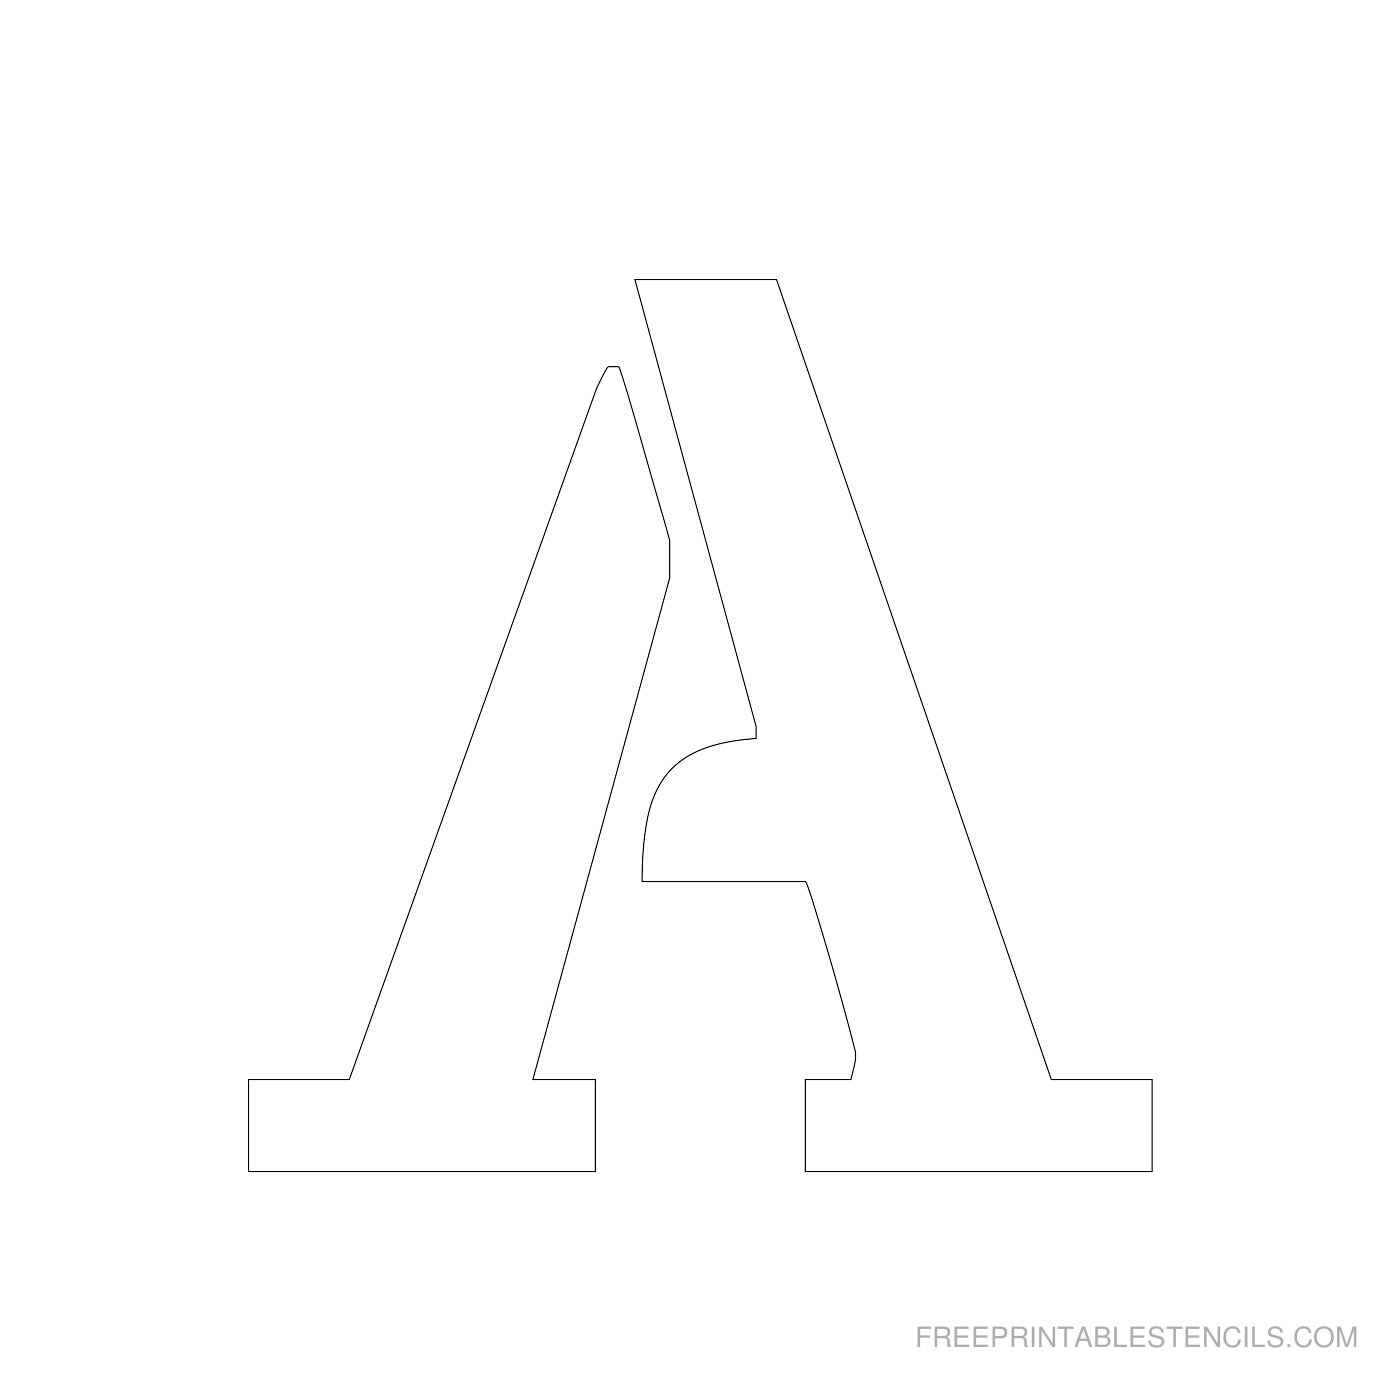 Printable 4 Inch Letter Stencils A-Z | Free Printable Stencils - Free Printable Block Letters